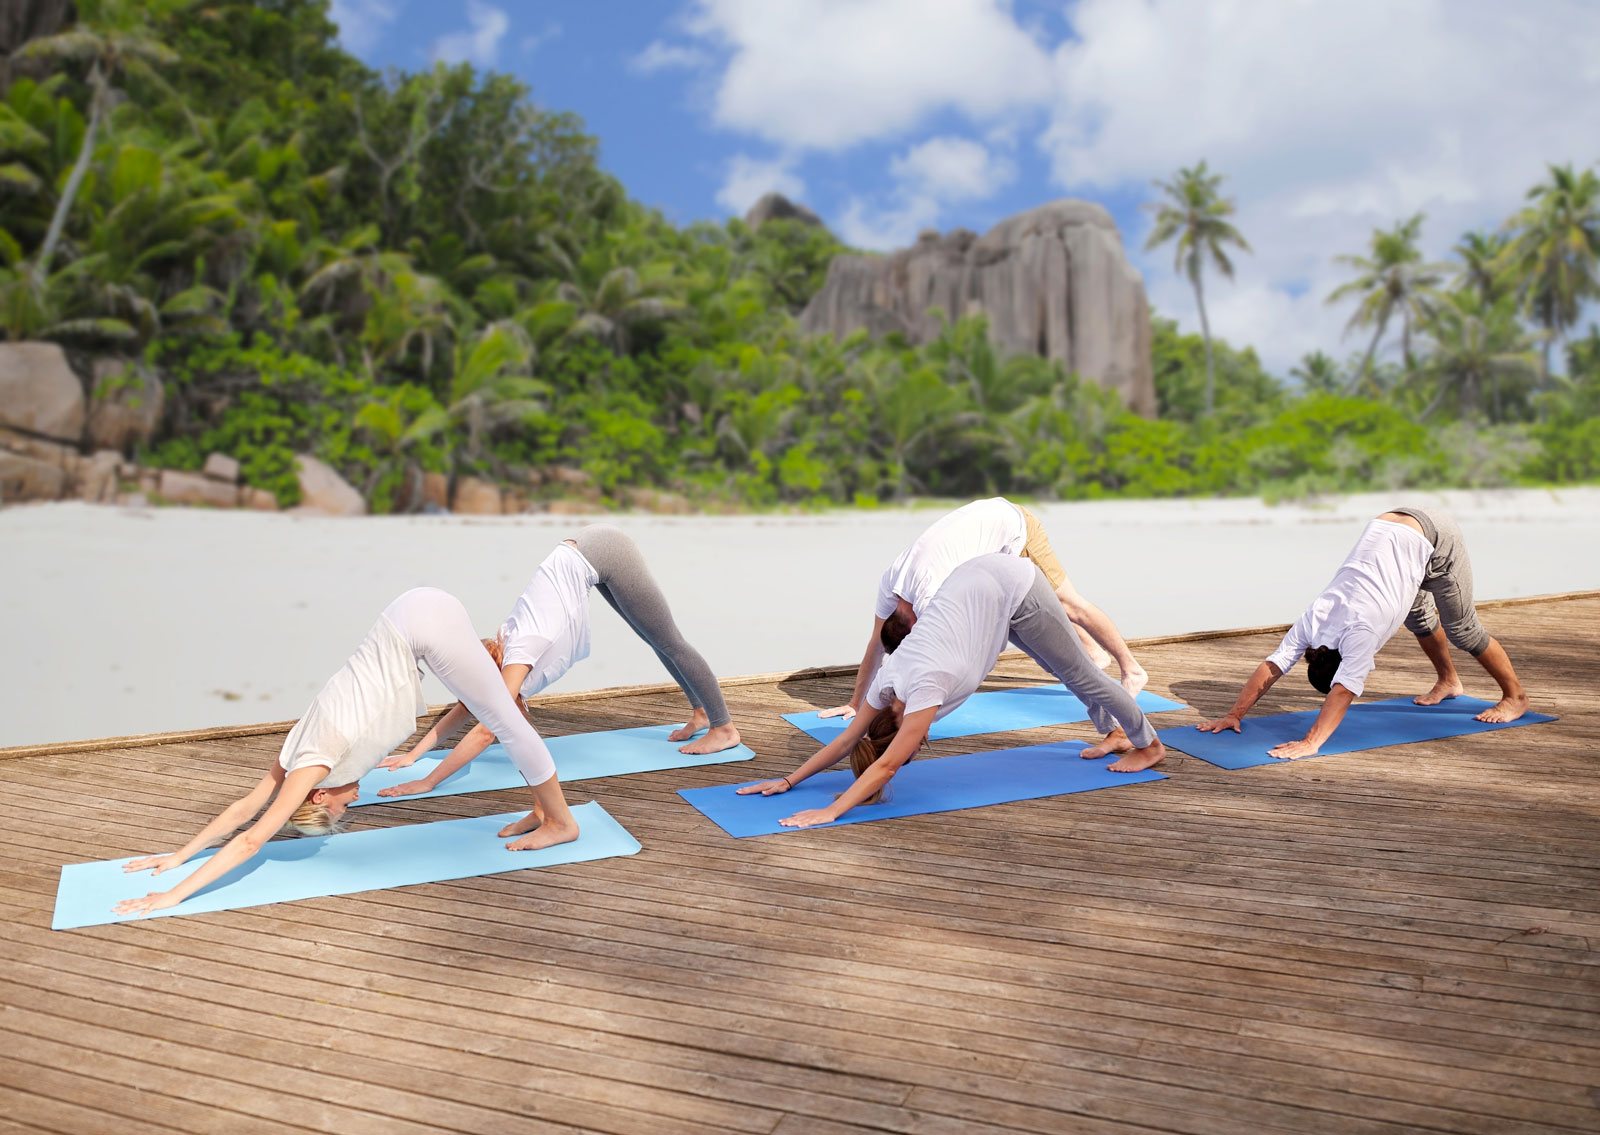 Group Yoga Outdoor | Pilates vs. Yoga: A Guide To Choosing The Right One For You